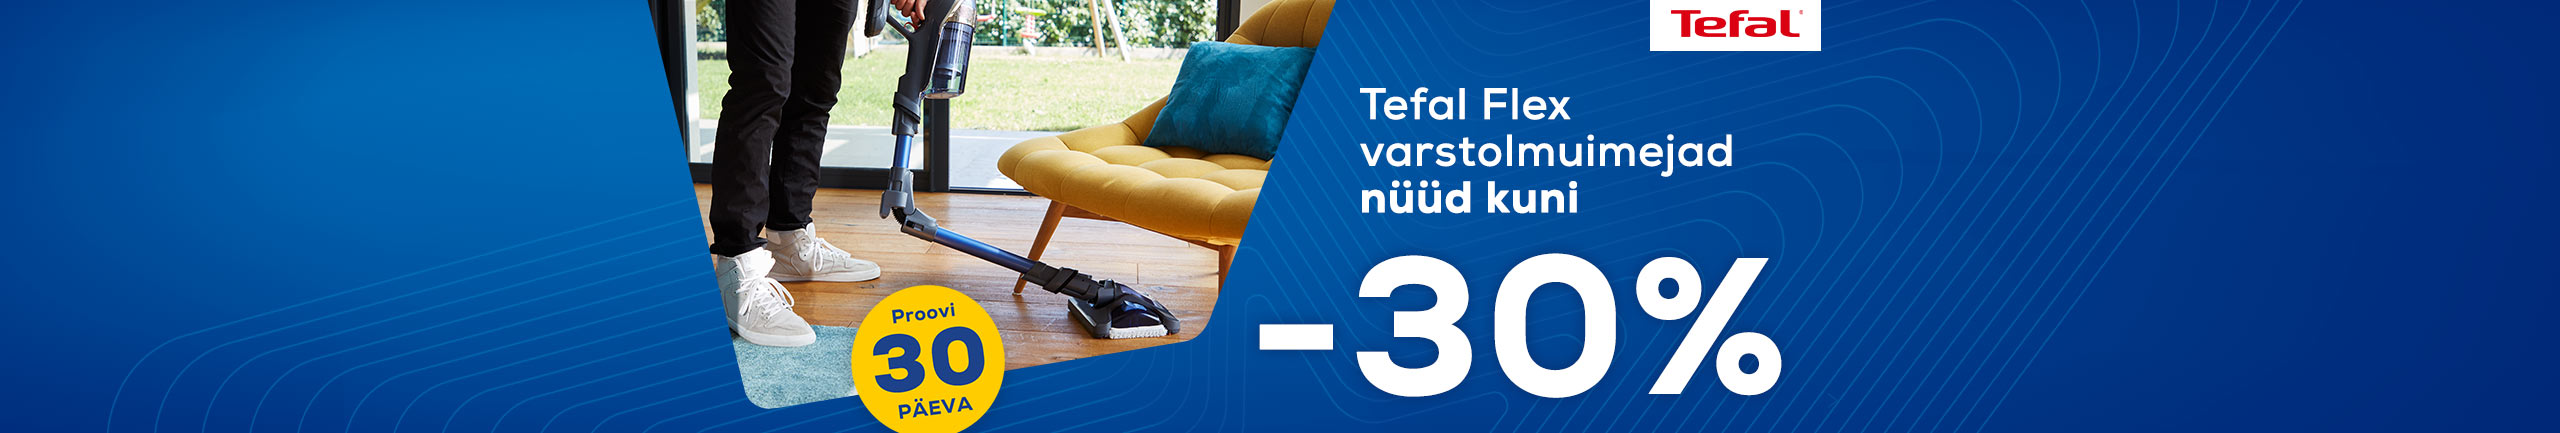 Tefal Flex handheld vacuum cleaners now up to -30%